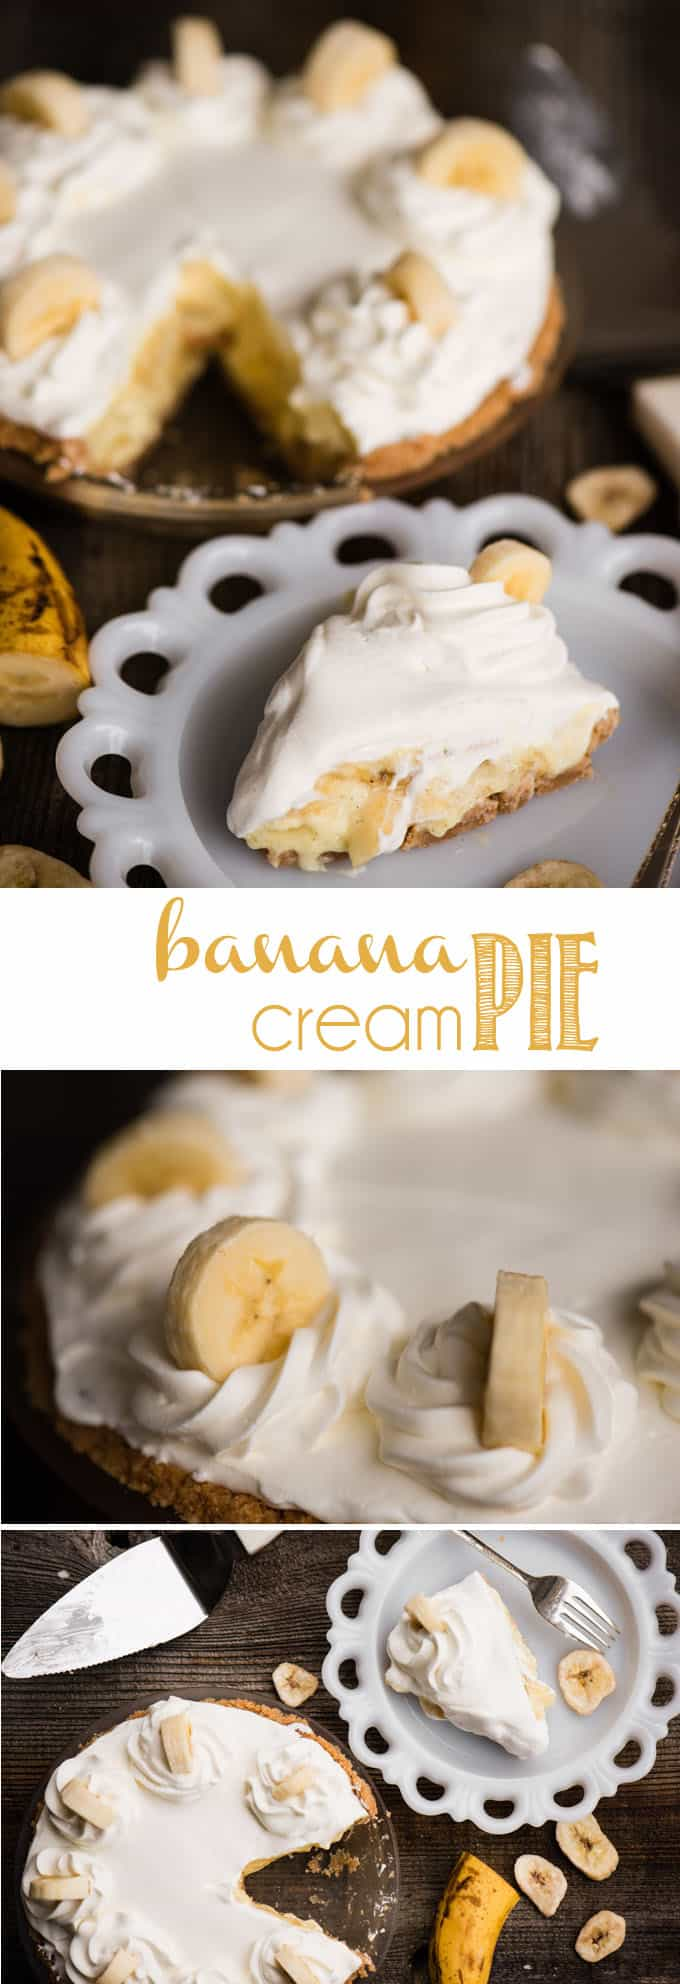 Banana Cream Pie made with ripe bananas, homemade vanilla pudding, and a Nilla Wafer crust, is a true American classic when it comes to desserts. Each bite is a flavor explosion full of different textures that will send you right back to your youth. This is the best homemade Banana Cream Pie recipe you will find! #bananacreampie #pie #banana #dessert #vanillapudding